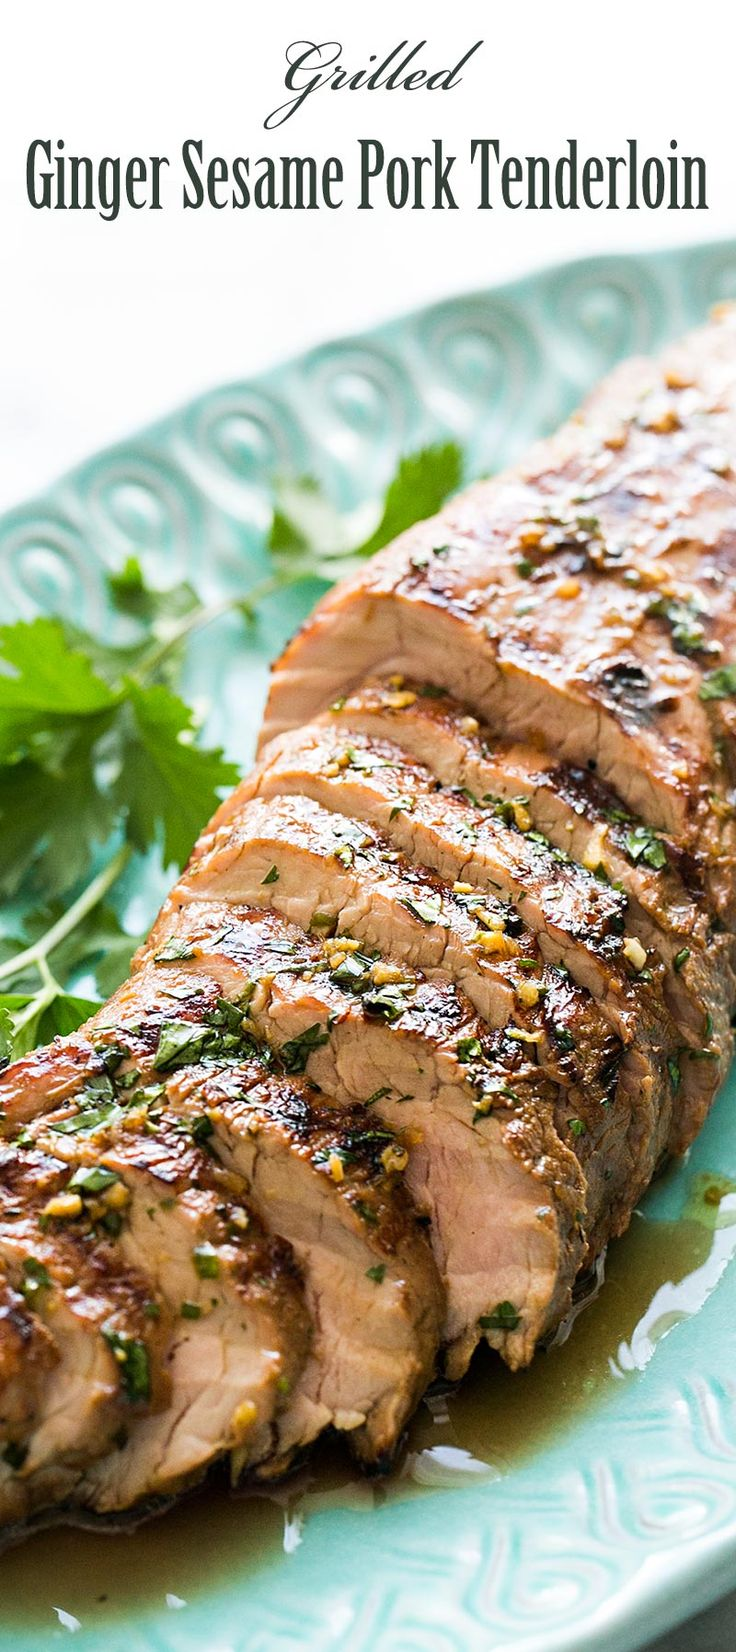 Easy grilled pork tenderloin, marinated in soy sauce, ginger, sesame oil marinade, and grilled to perfection! On SimplyRecipes.com